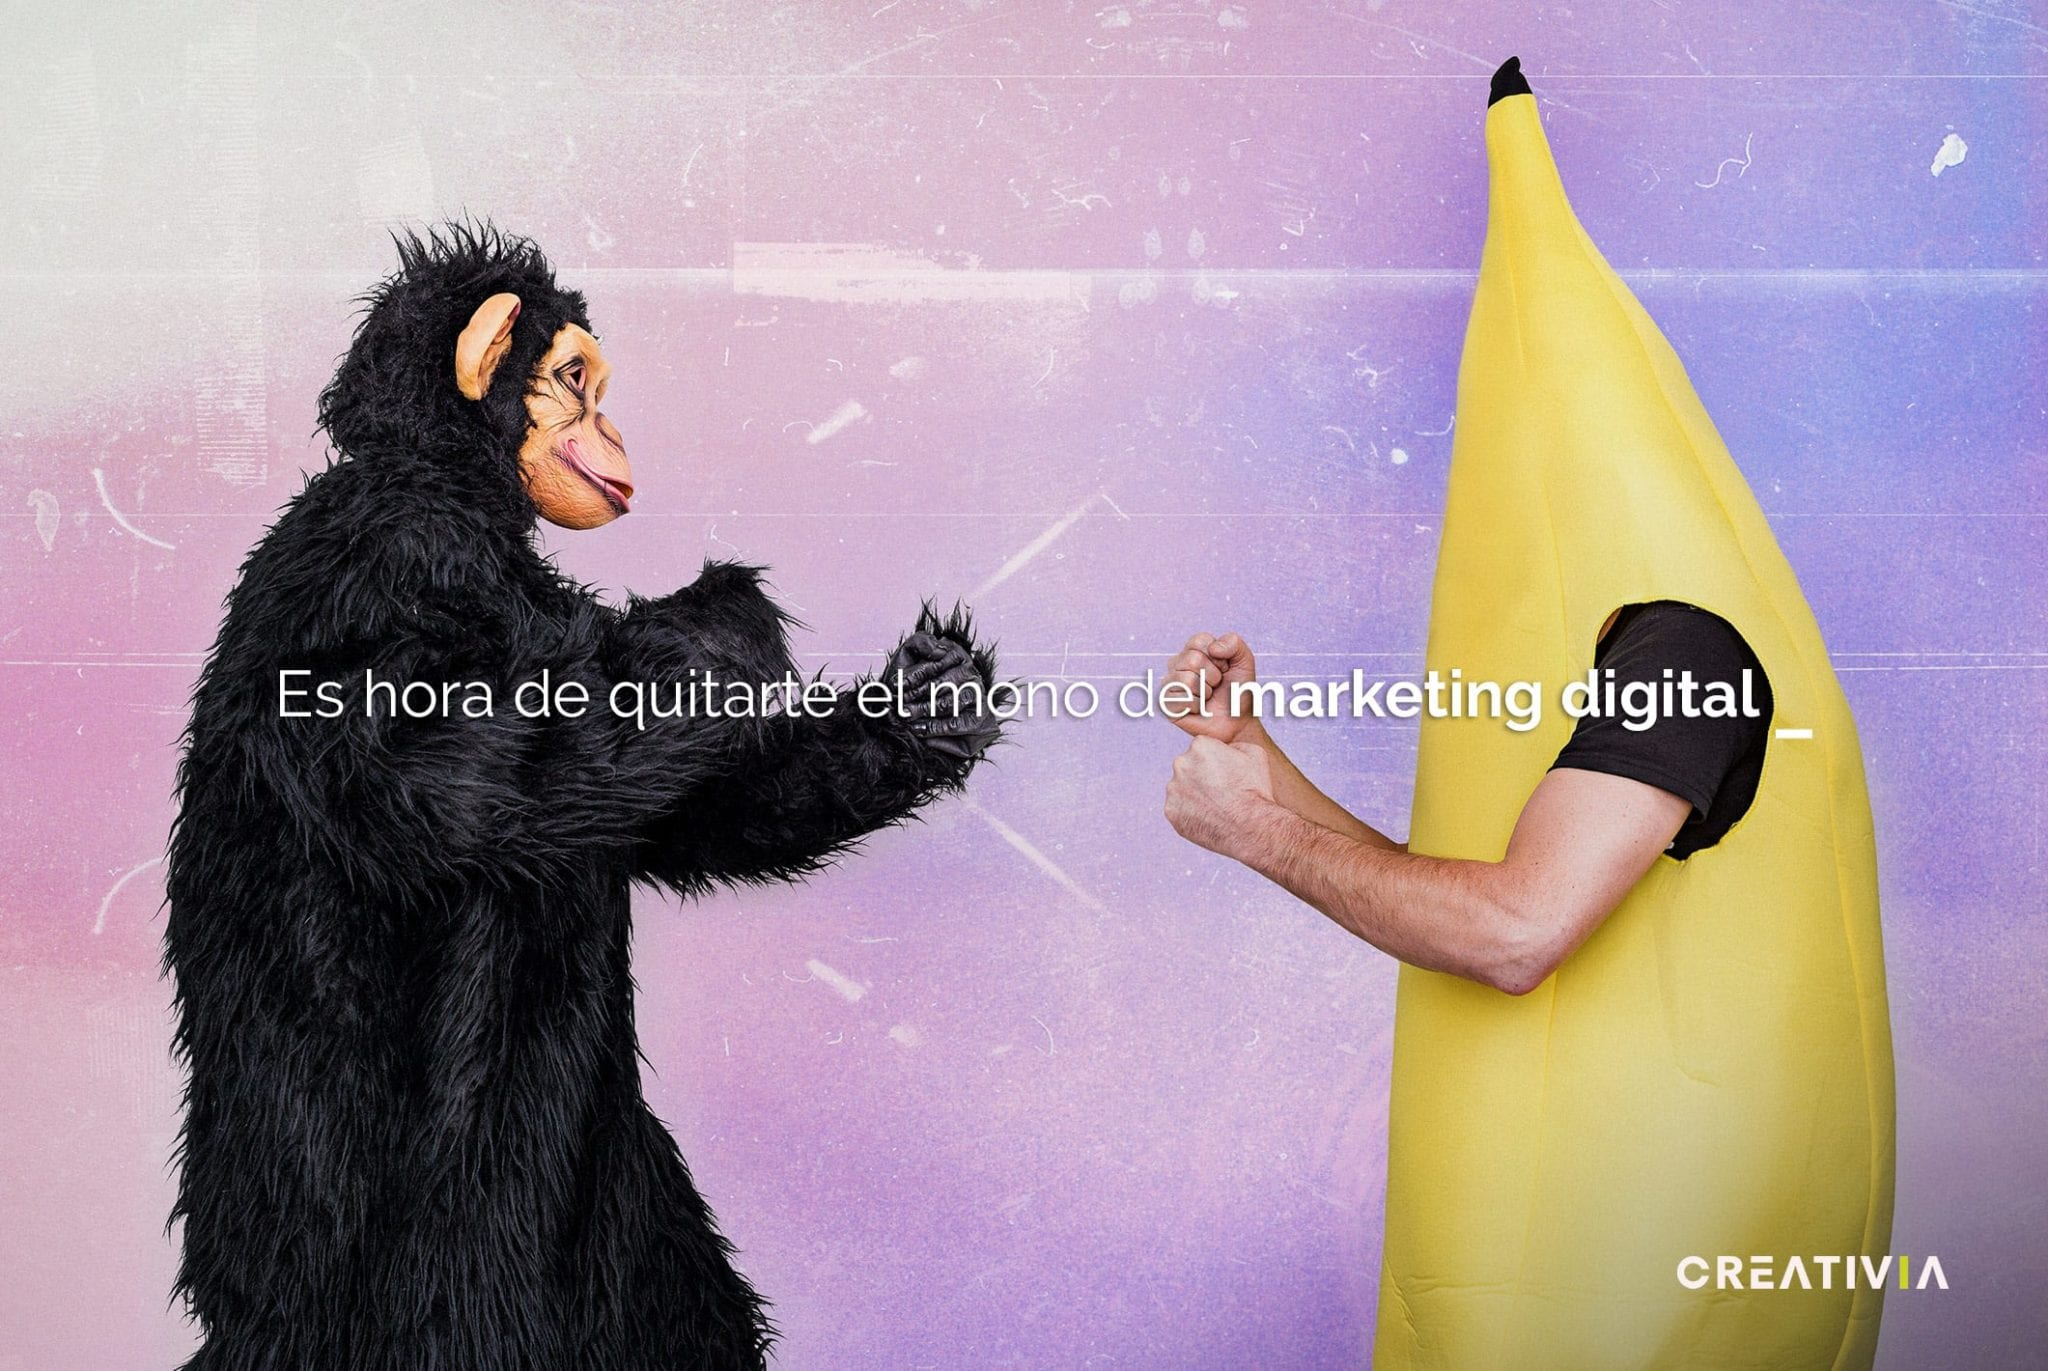 invierte en Marketing Digital- Creativia